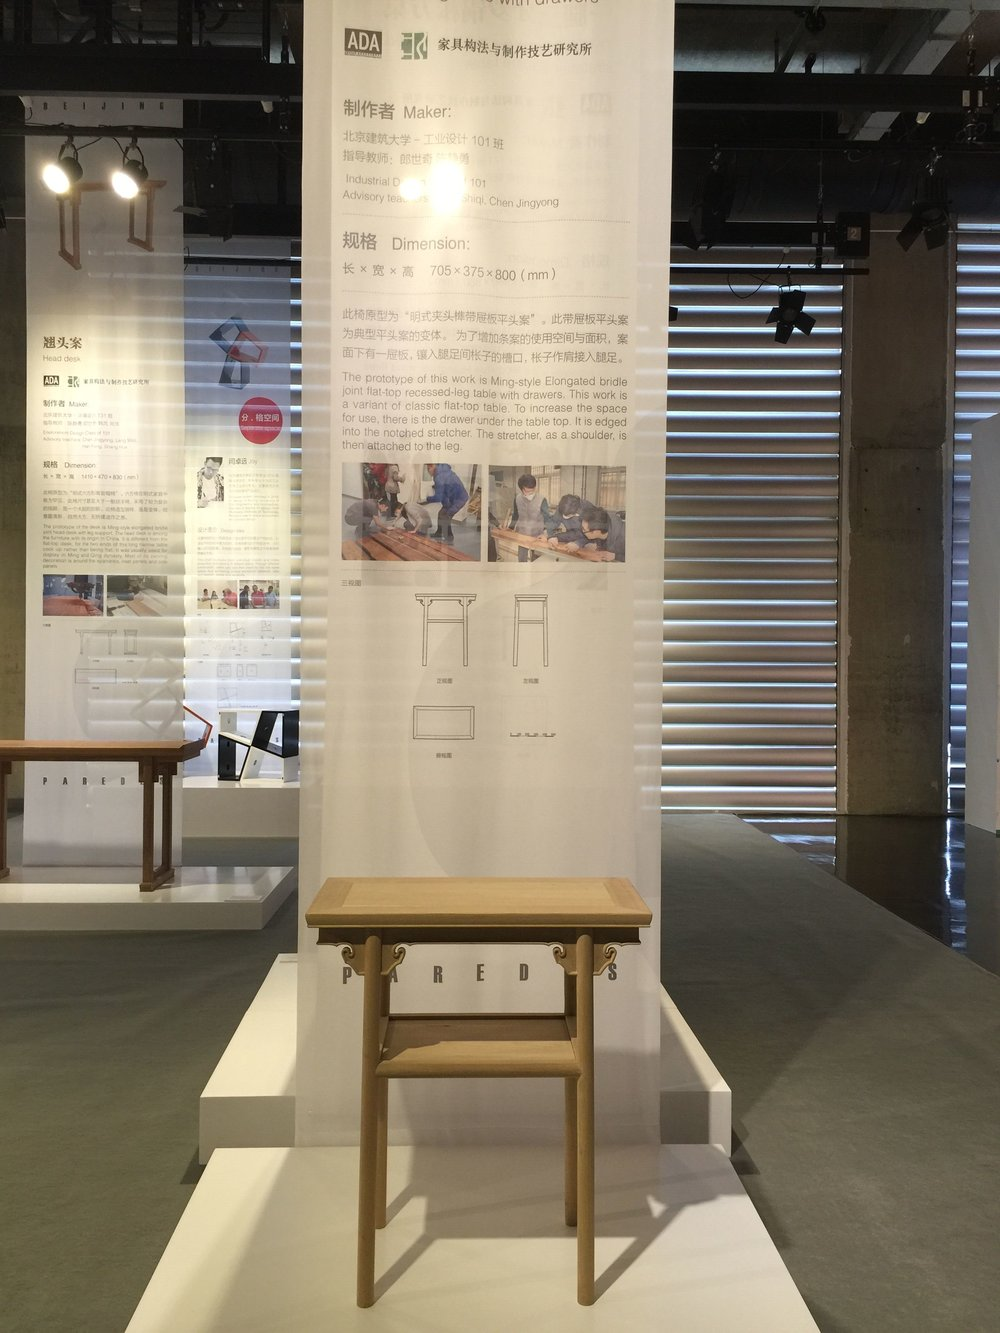 Ming  Style Elongated Bridle Joint Flat Top Recessed Leg Table Prototype  (2016 Beijing International Design Week)